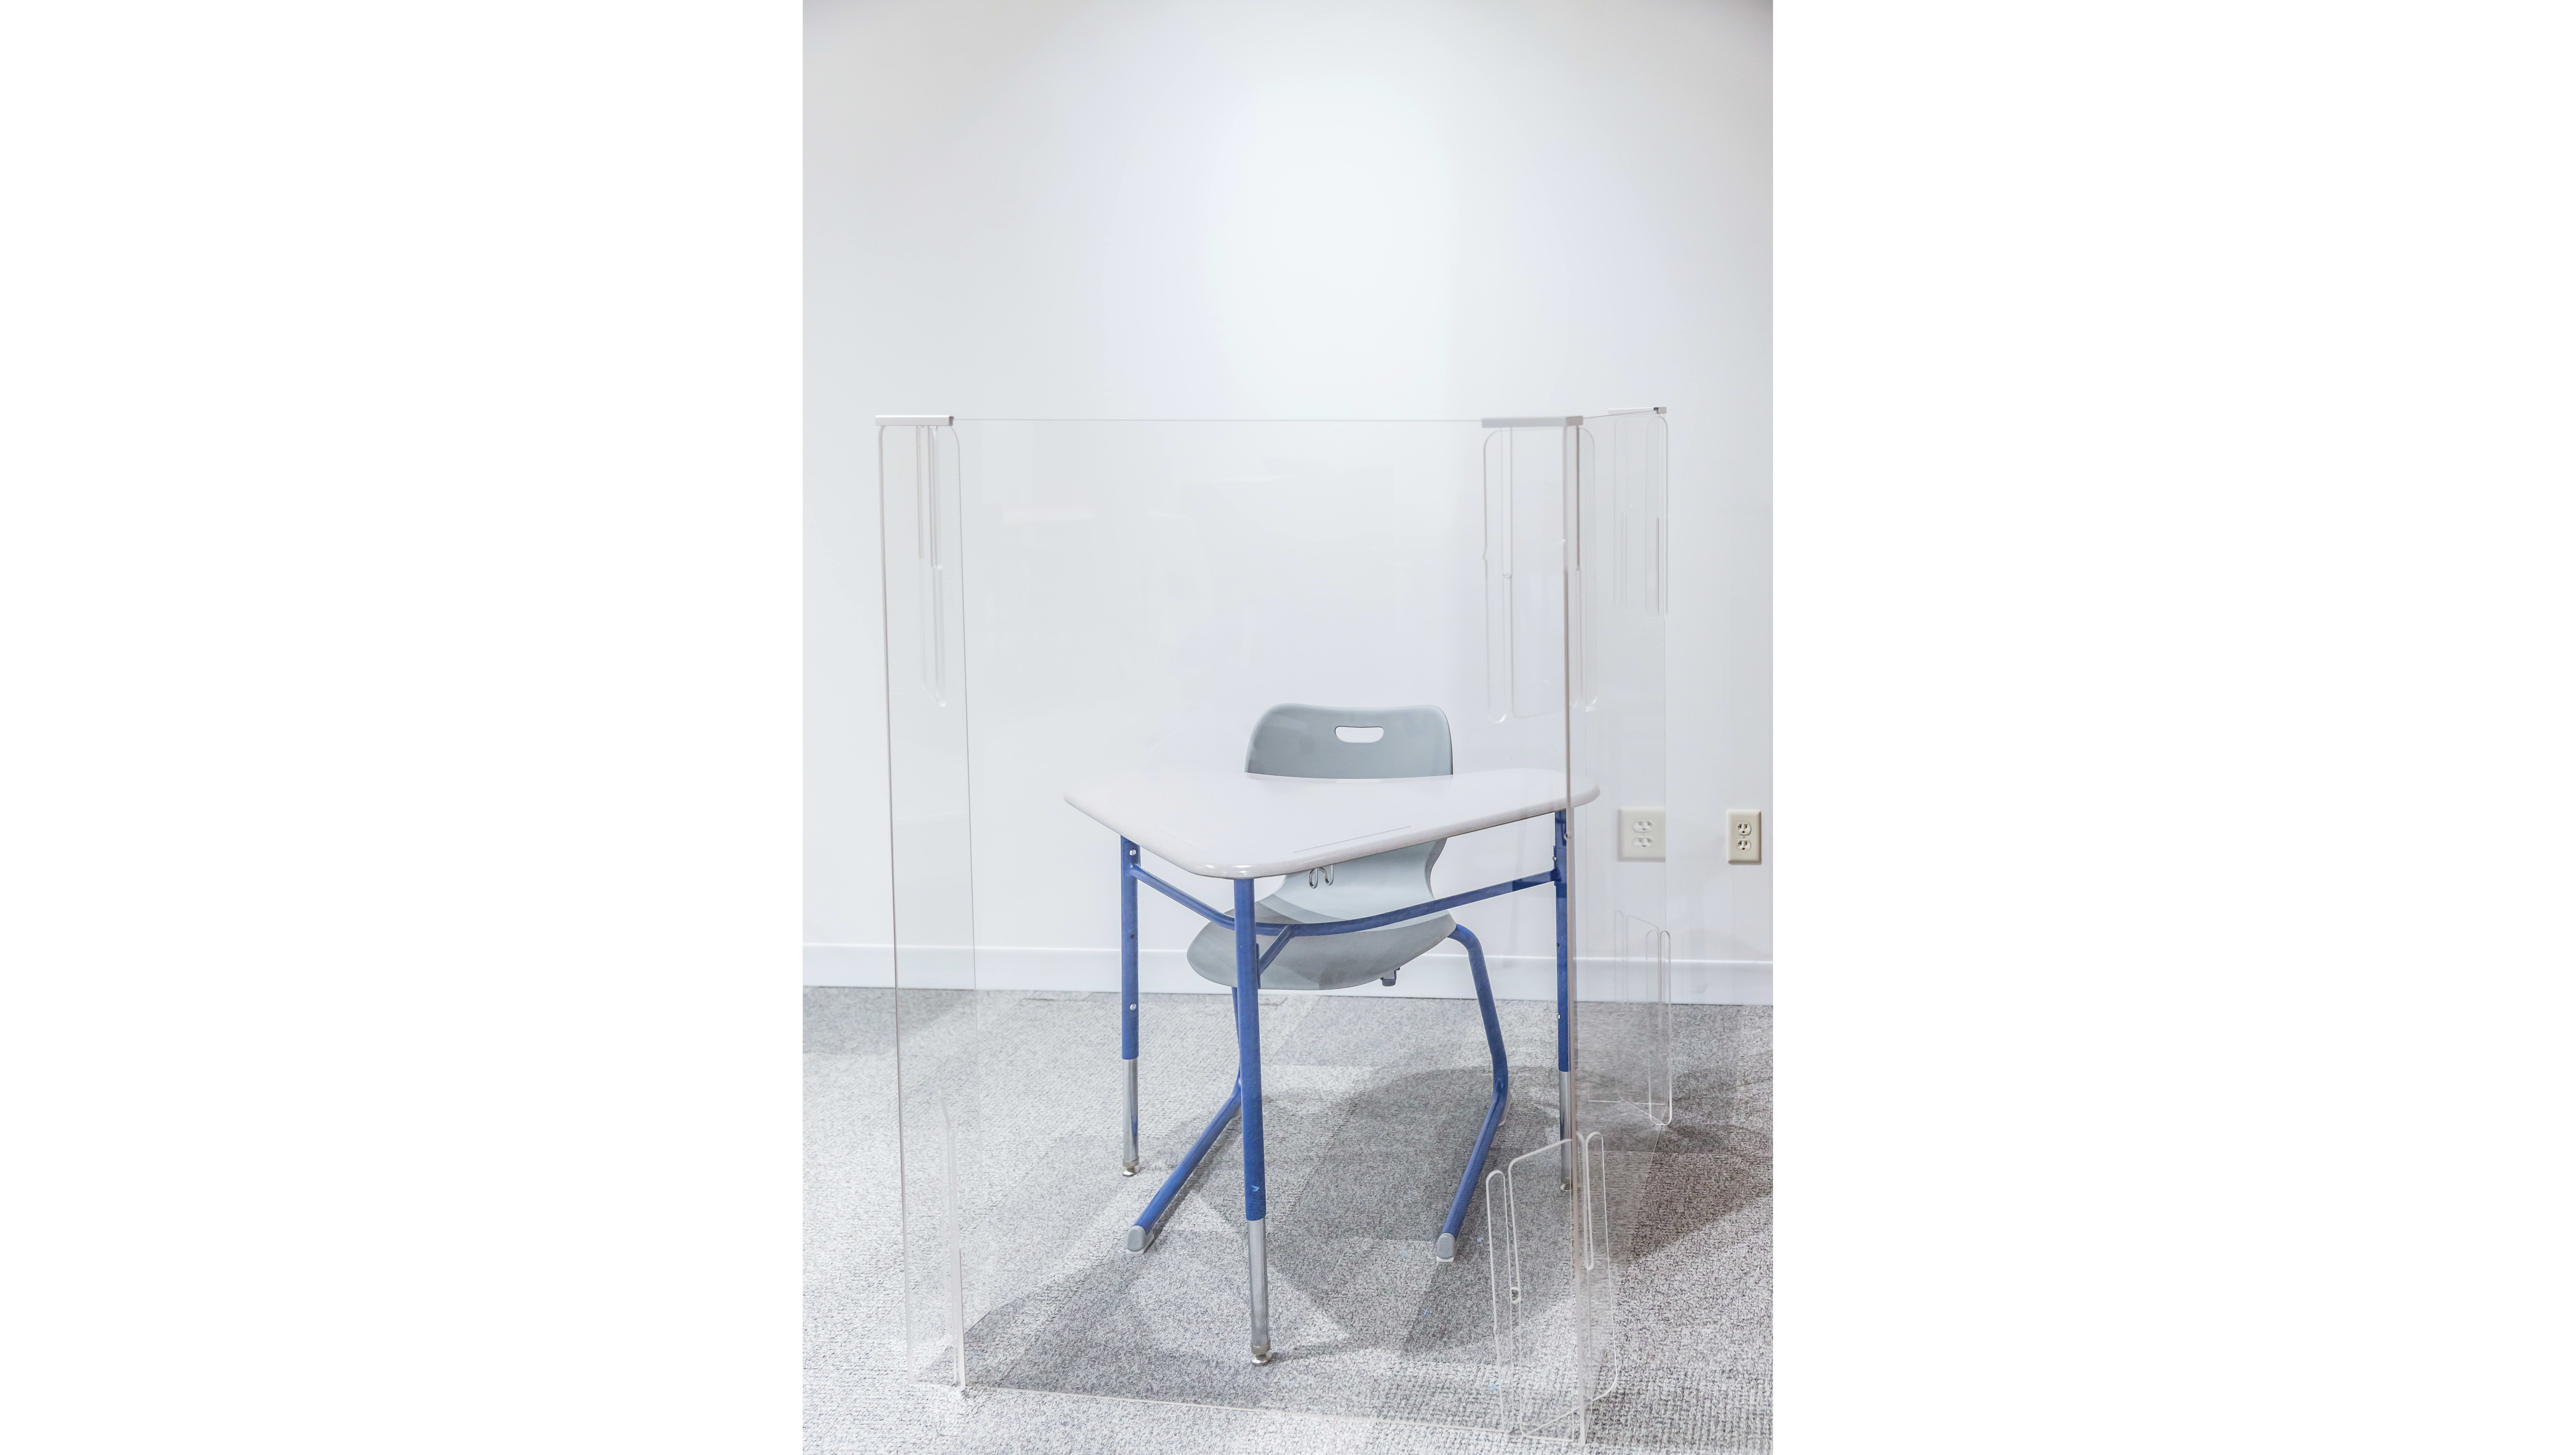 SmartLink Chair with SmartLink Desk and Acrylic Freestanding Screen